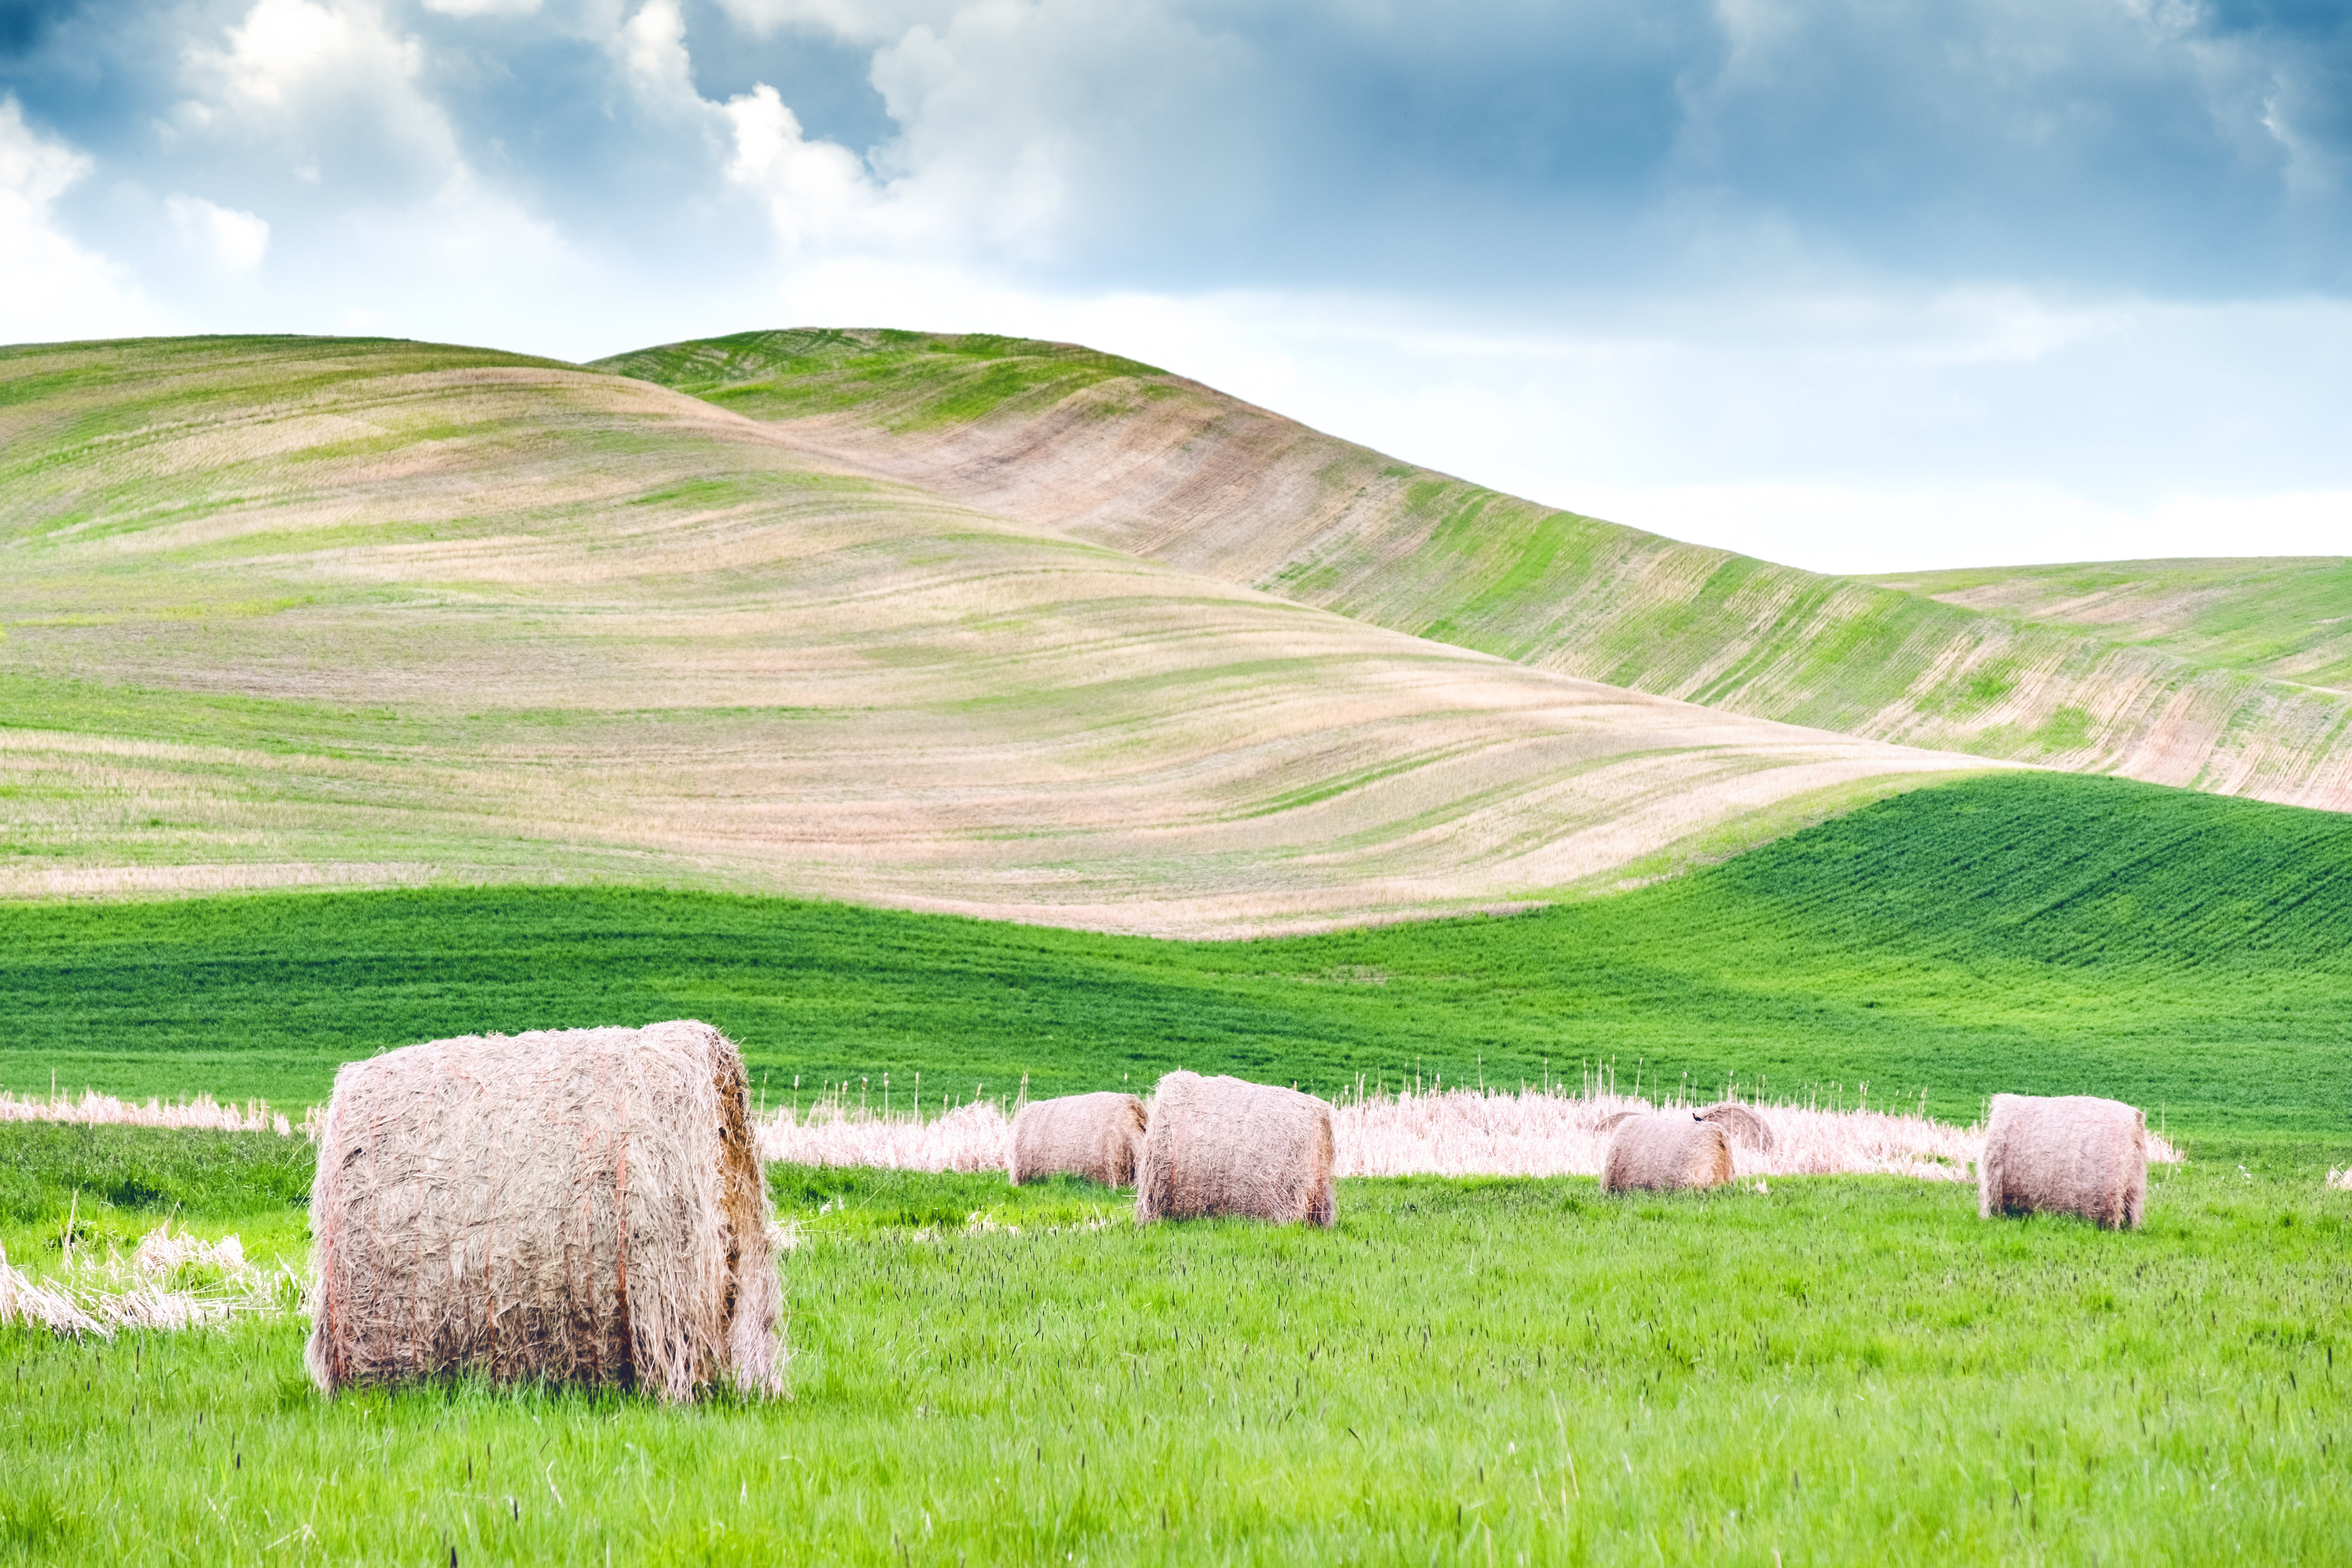 Several Hay Rolls on Grass Field Within Mountain Range